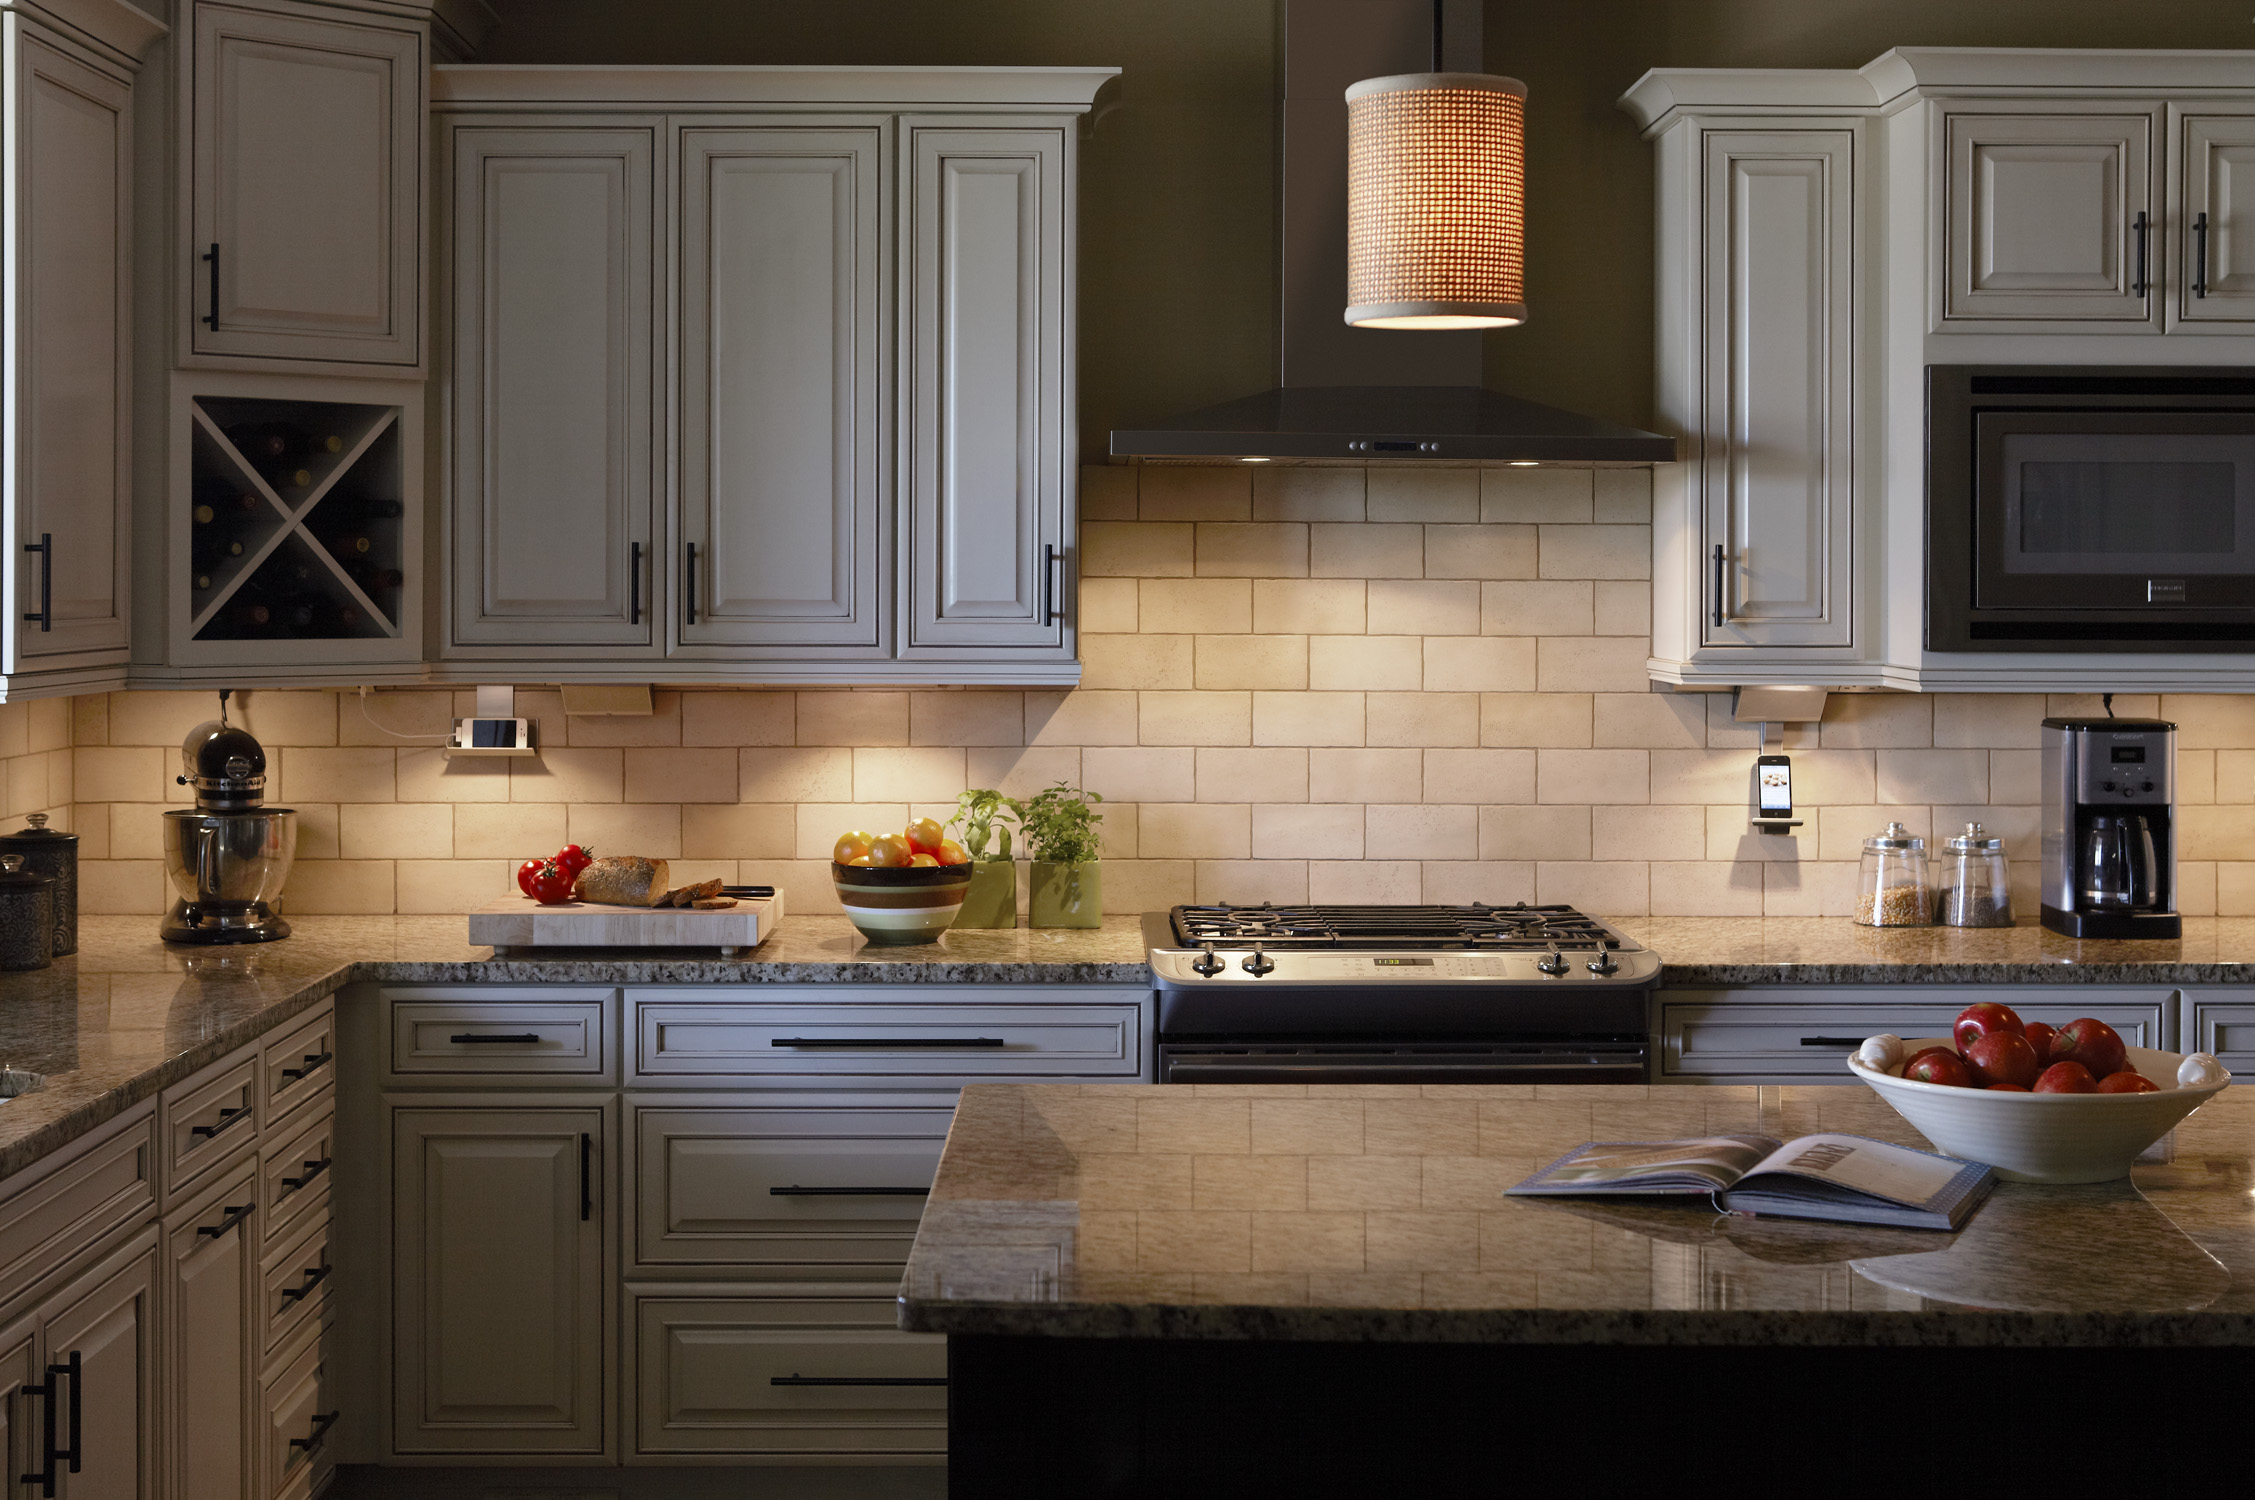 Under Cabinet Outlets Kitchen Under Cabinet Lighting System From Legrand